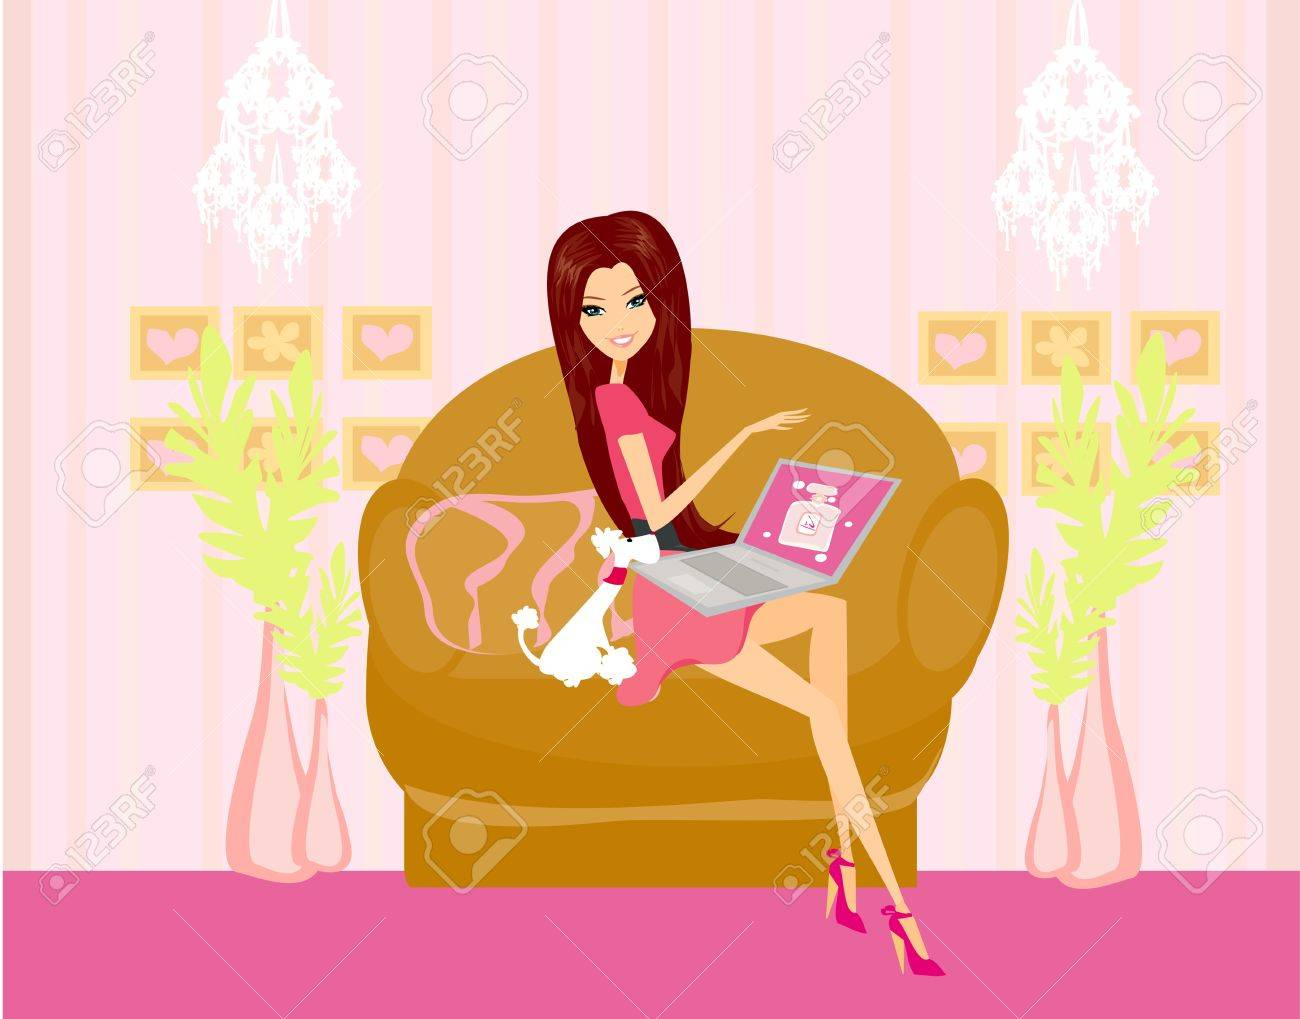 Online shopping - young smiling woman sitting with laptop computer Stock Vector - 16234640